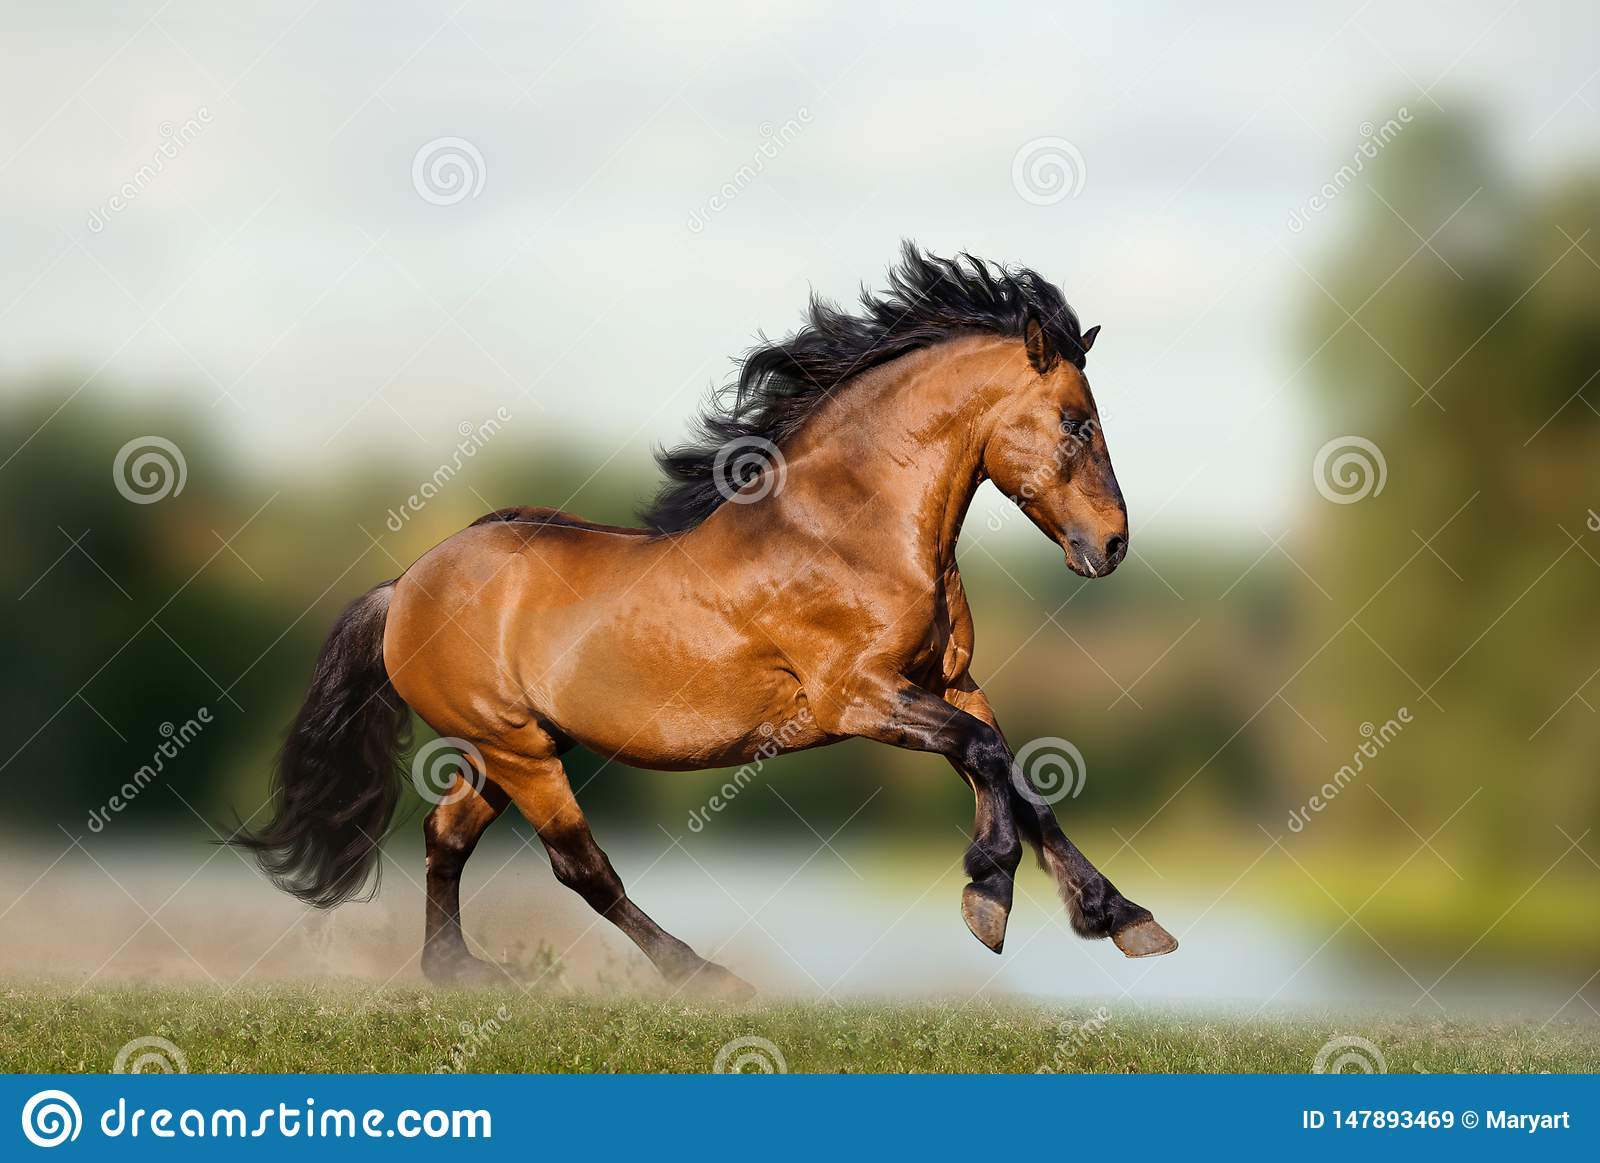 124 373 Stallion Photos Free Royalty Free Stock Photos From Dreamstime